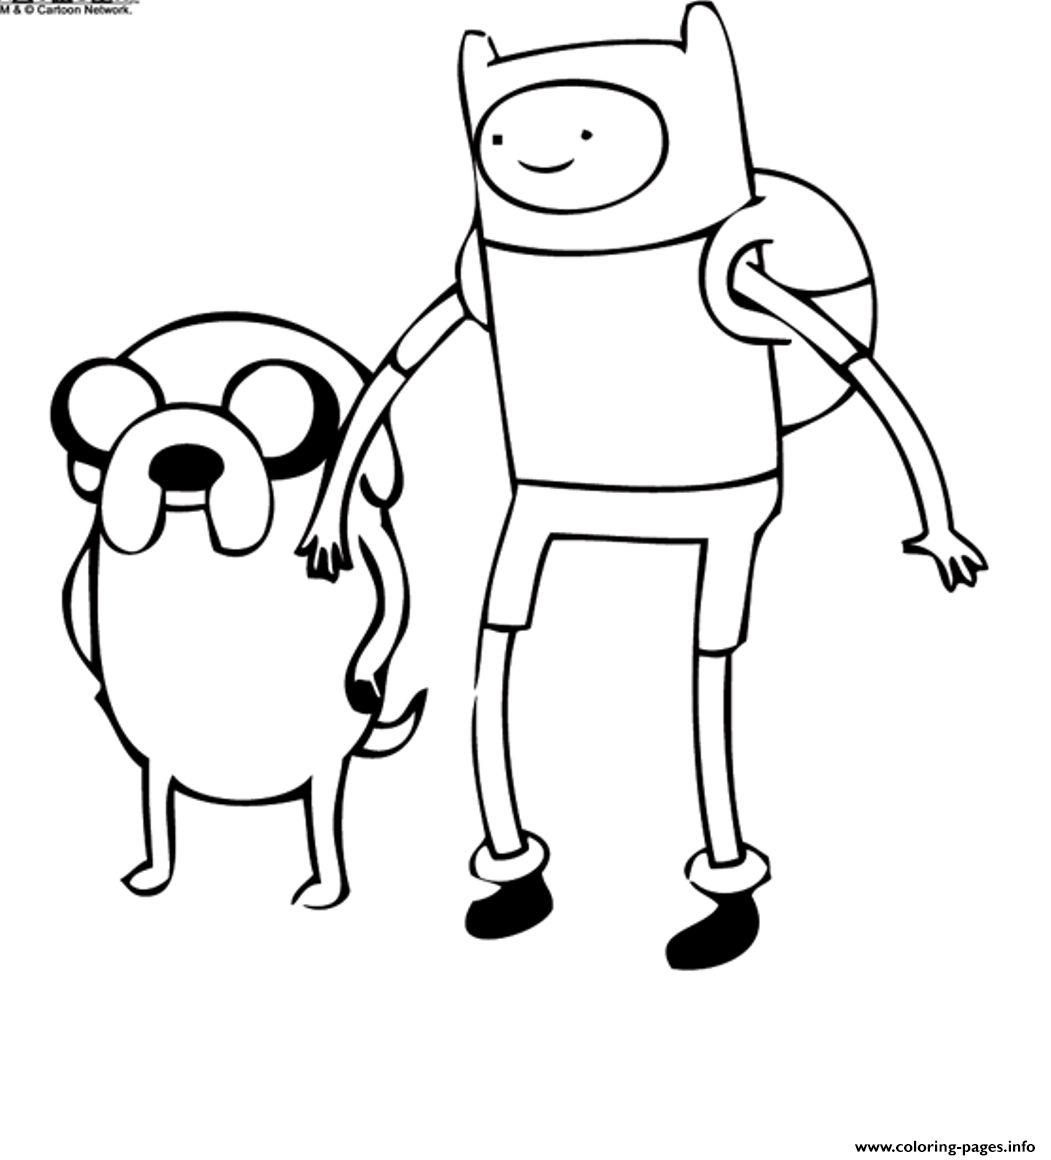 Cartoon Adventure Time S6365 coloring pages